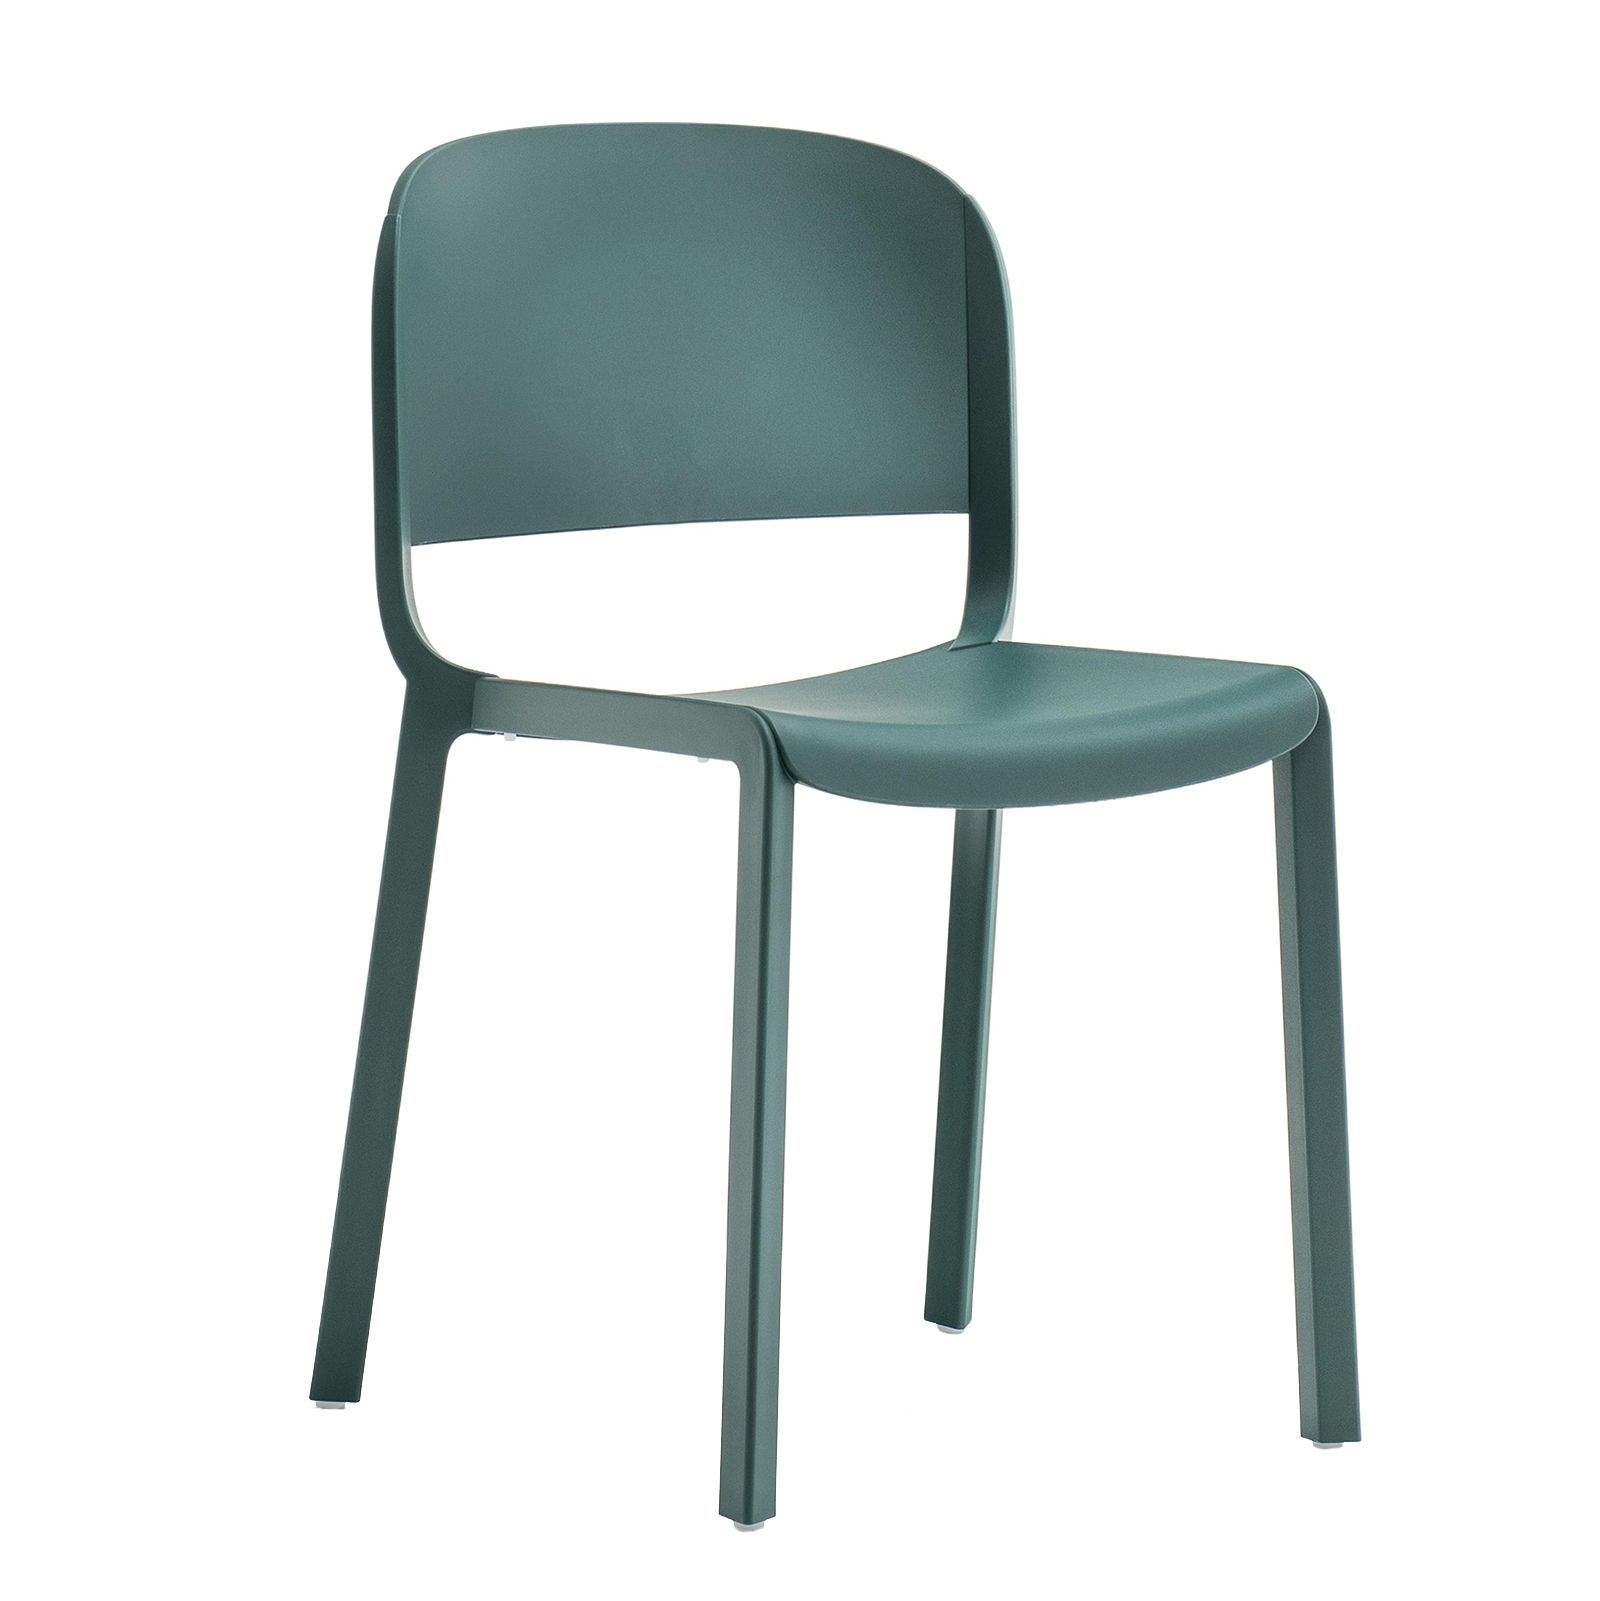 Dome 260 chair in different colors #basiccollection #plastic #chair ...